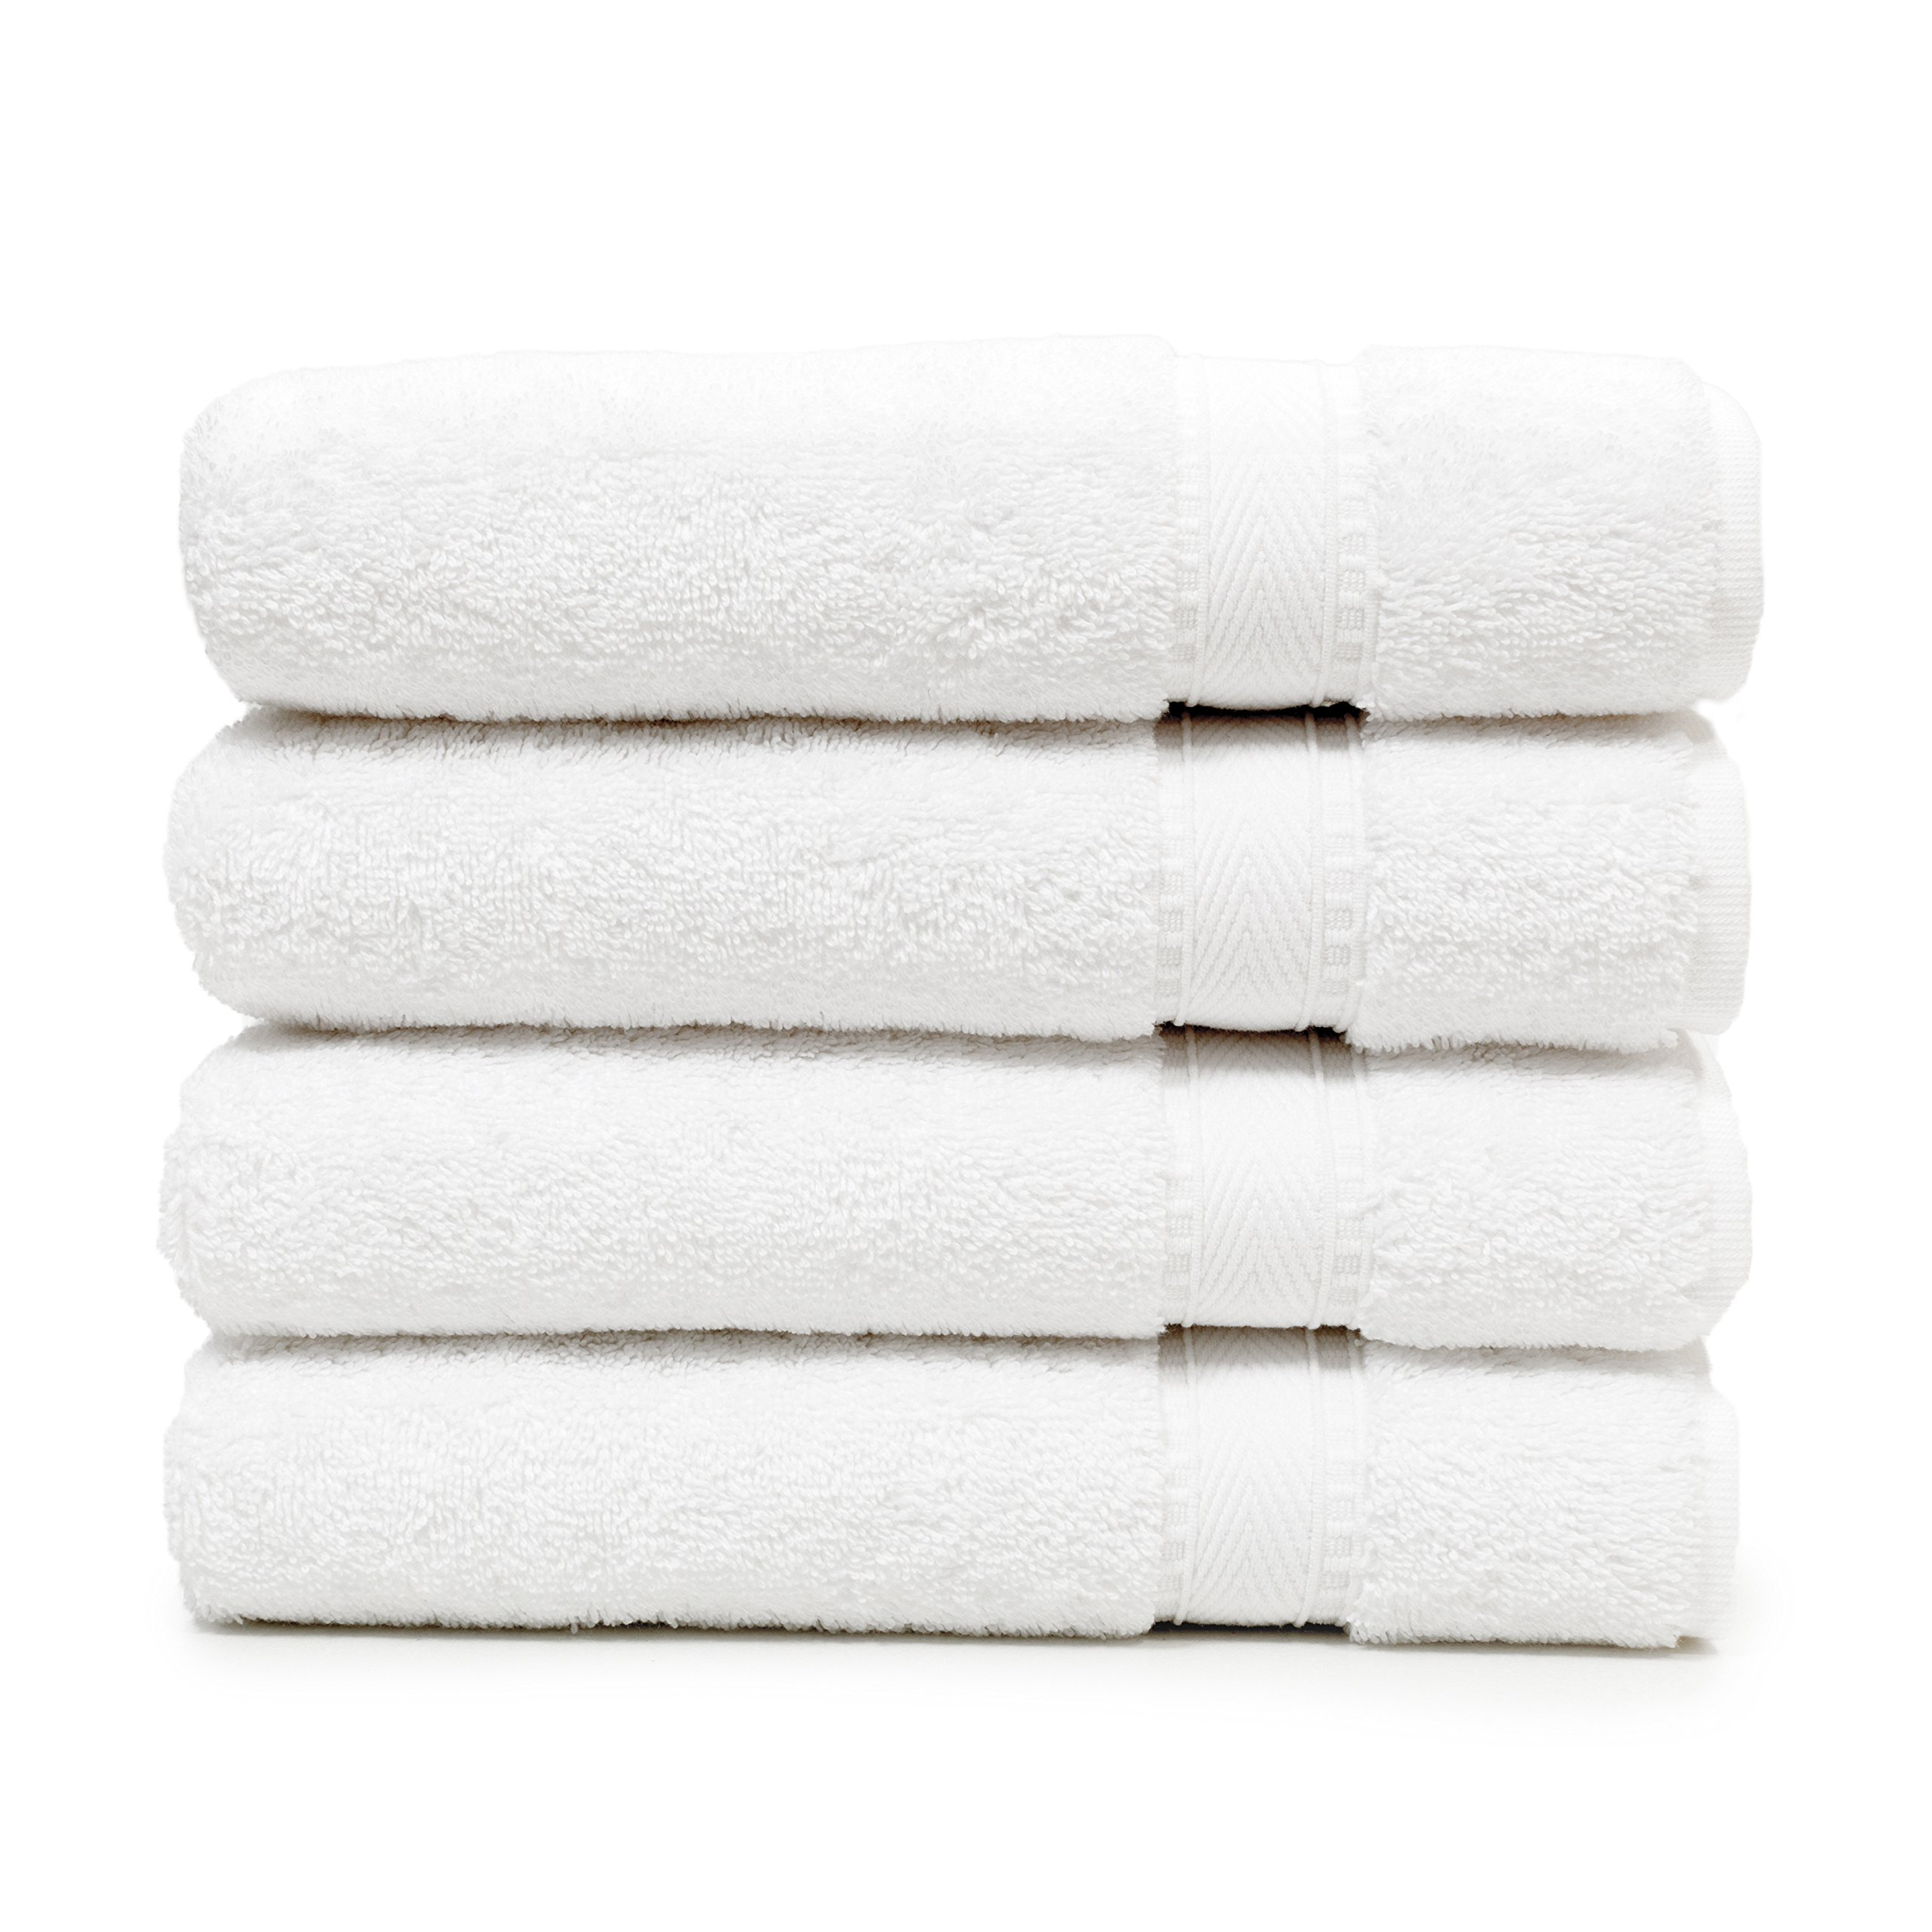 Linum Home Textiles SN00-4HT Bath Towel, White